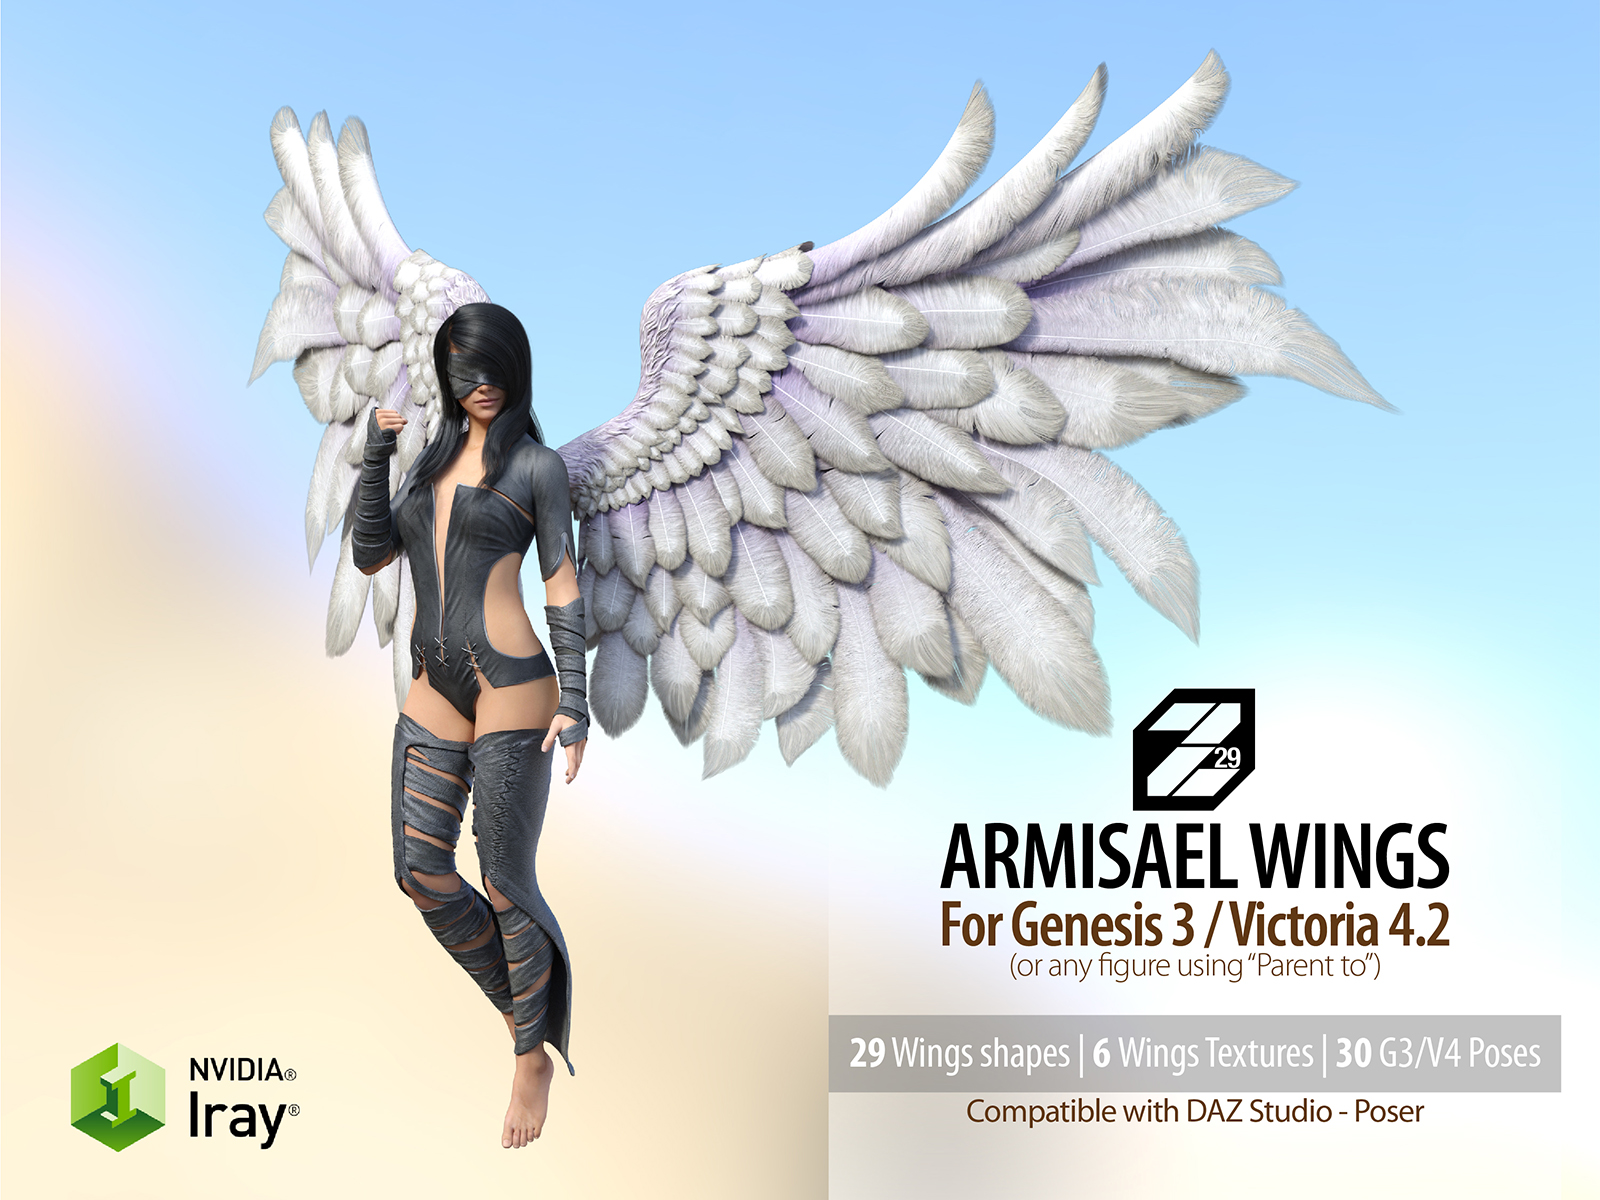 Armisael Wings